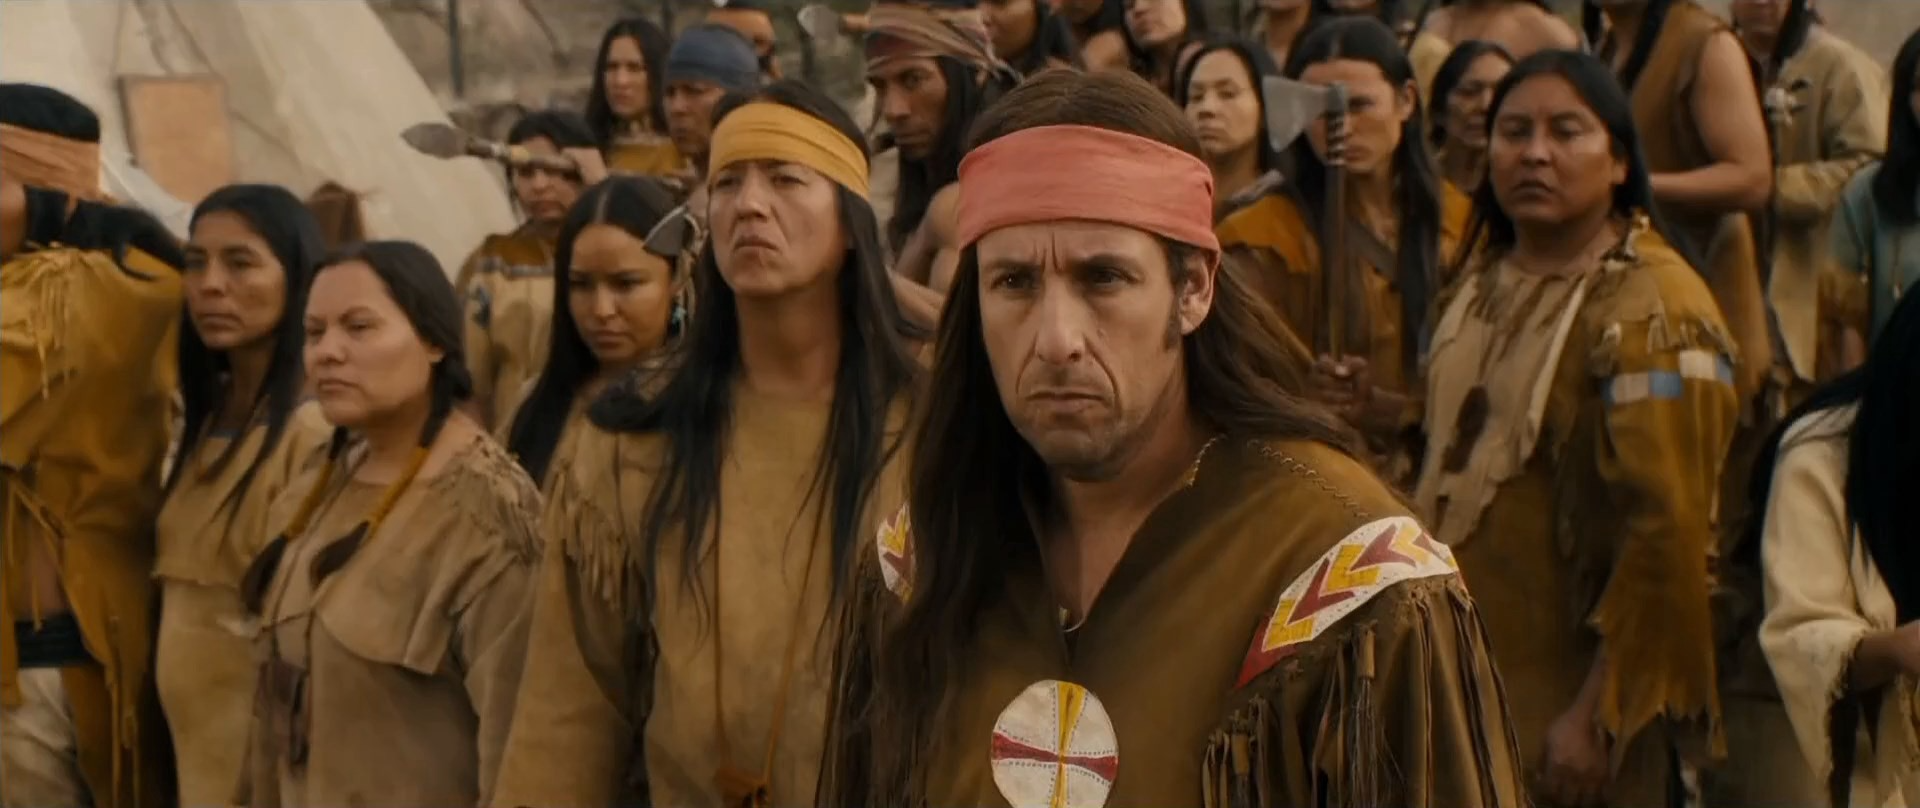 Adam Sandler in The Ridiculous 6